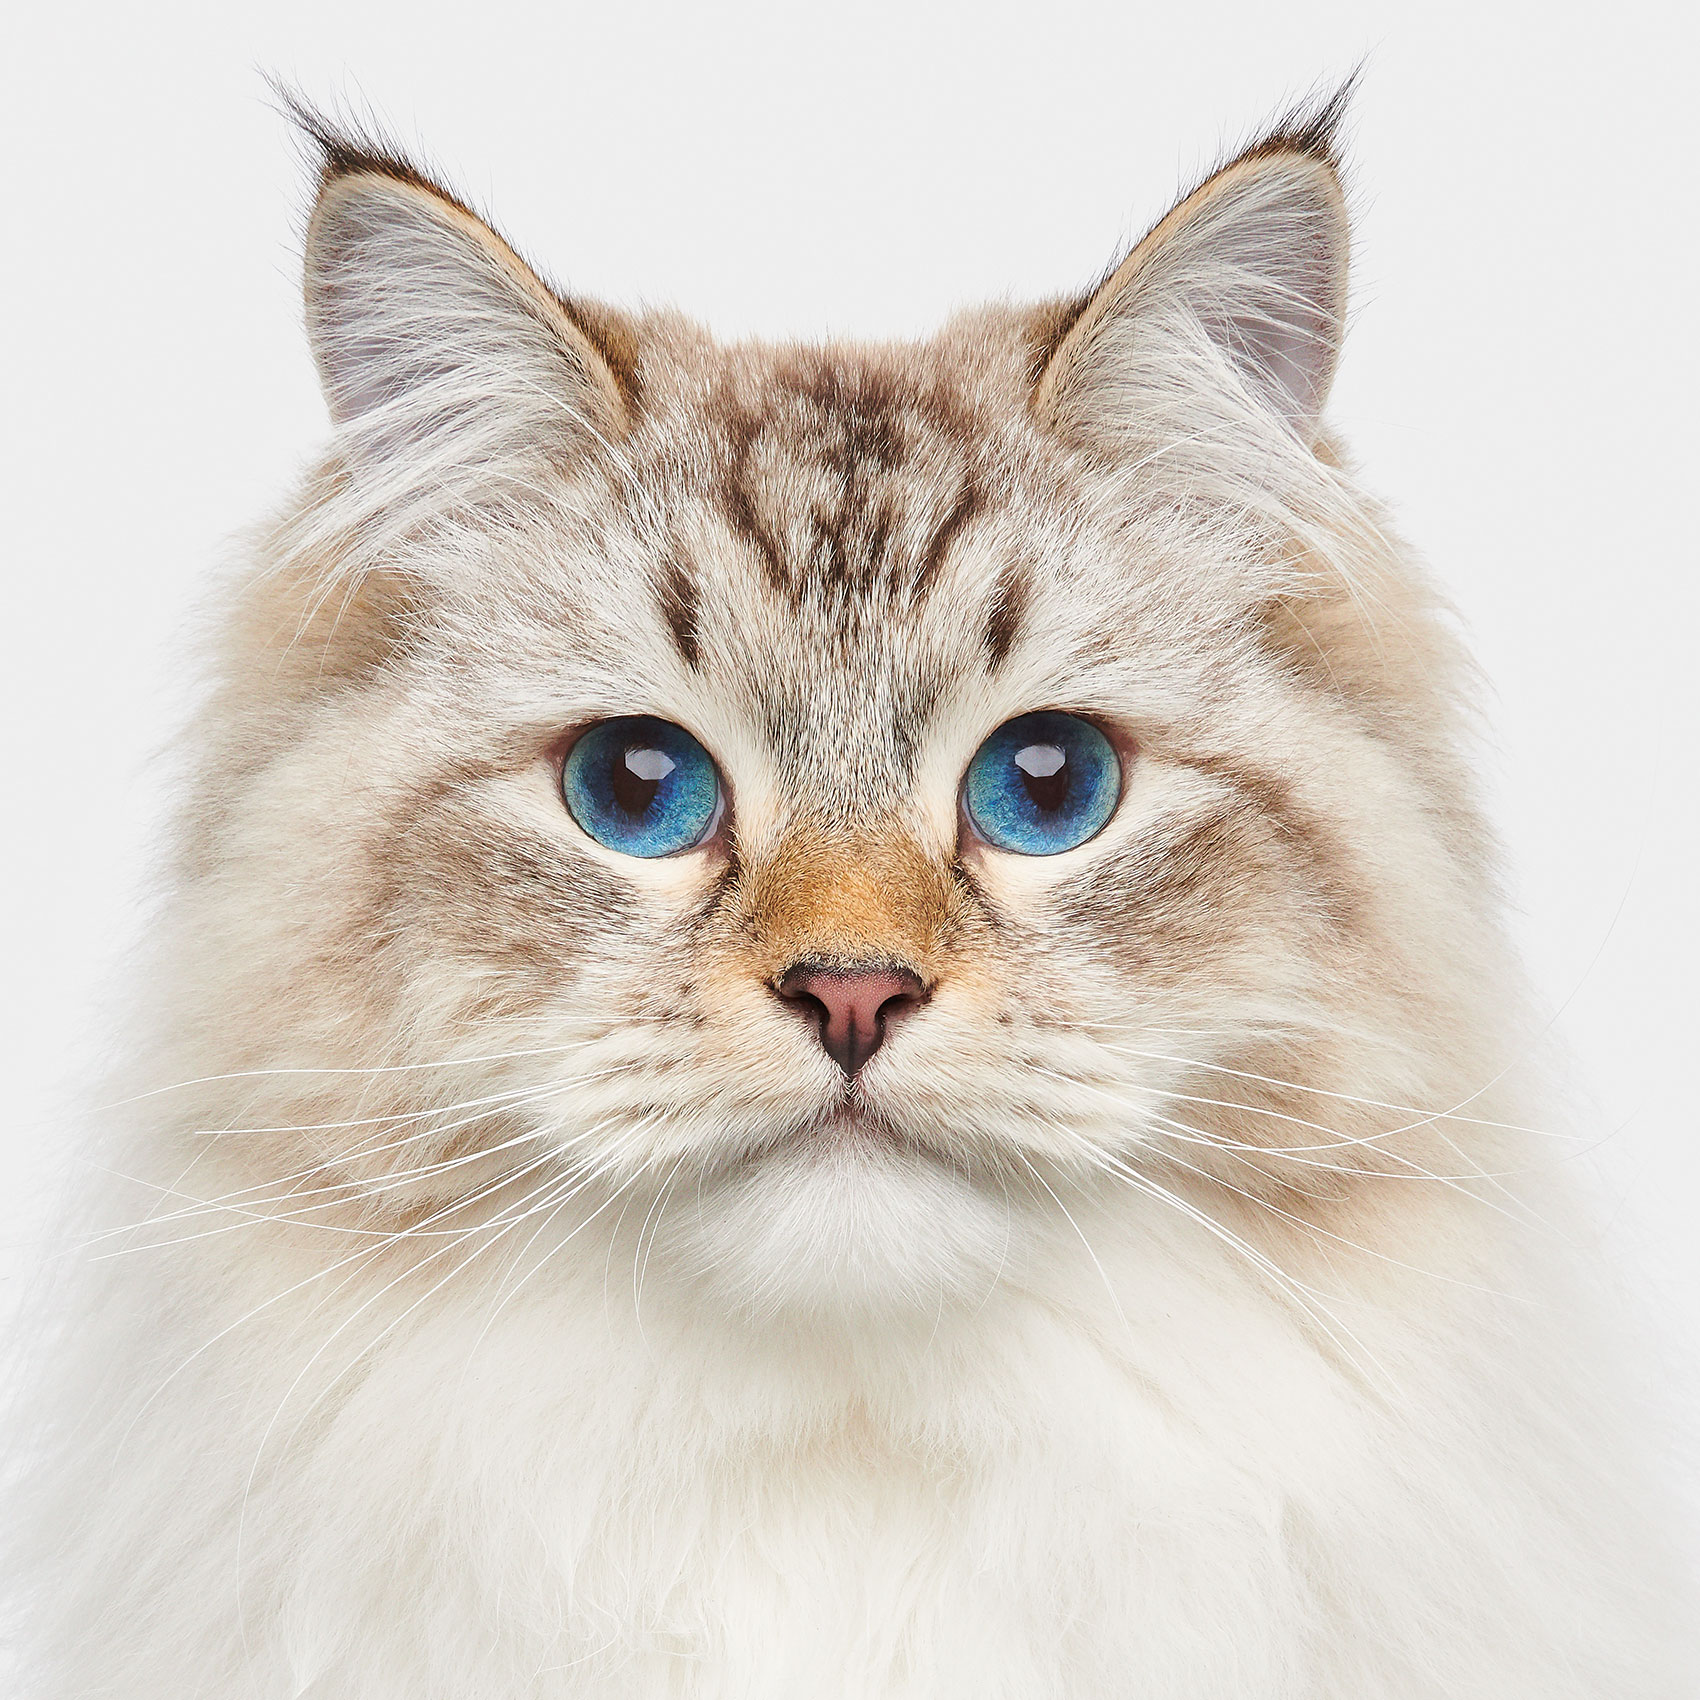 06_Squirrel_SiberianCat_01332